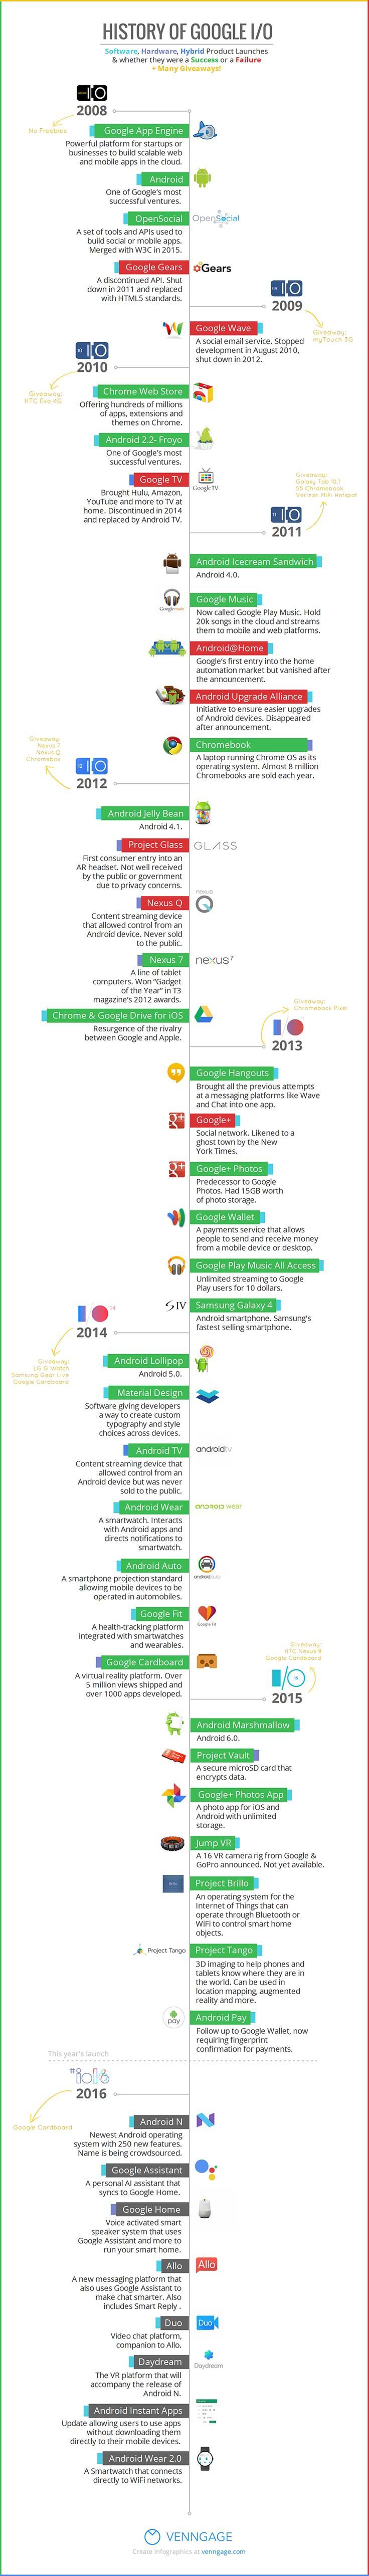 Infographic: History of Google I/O conferences, I've had the pleasure to attend the one in 2012!